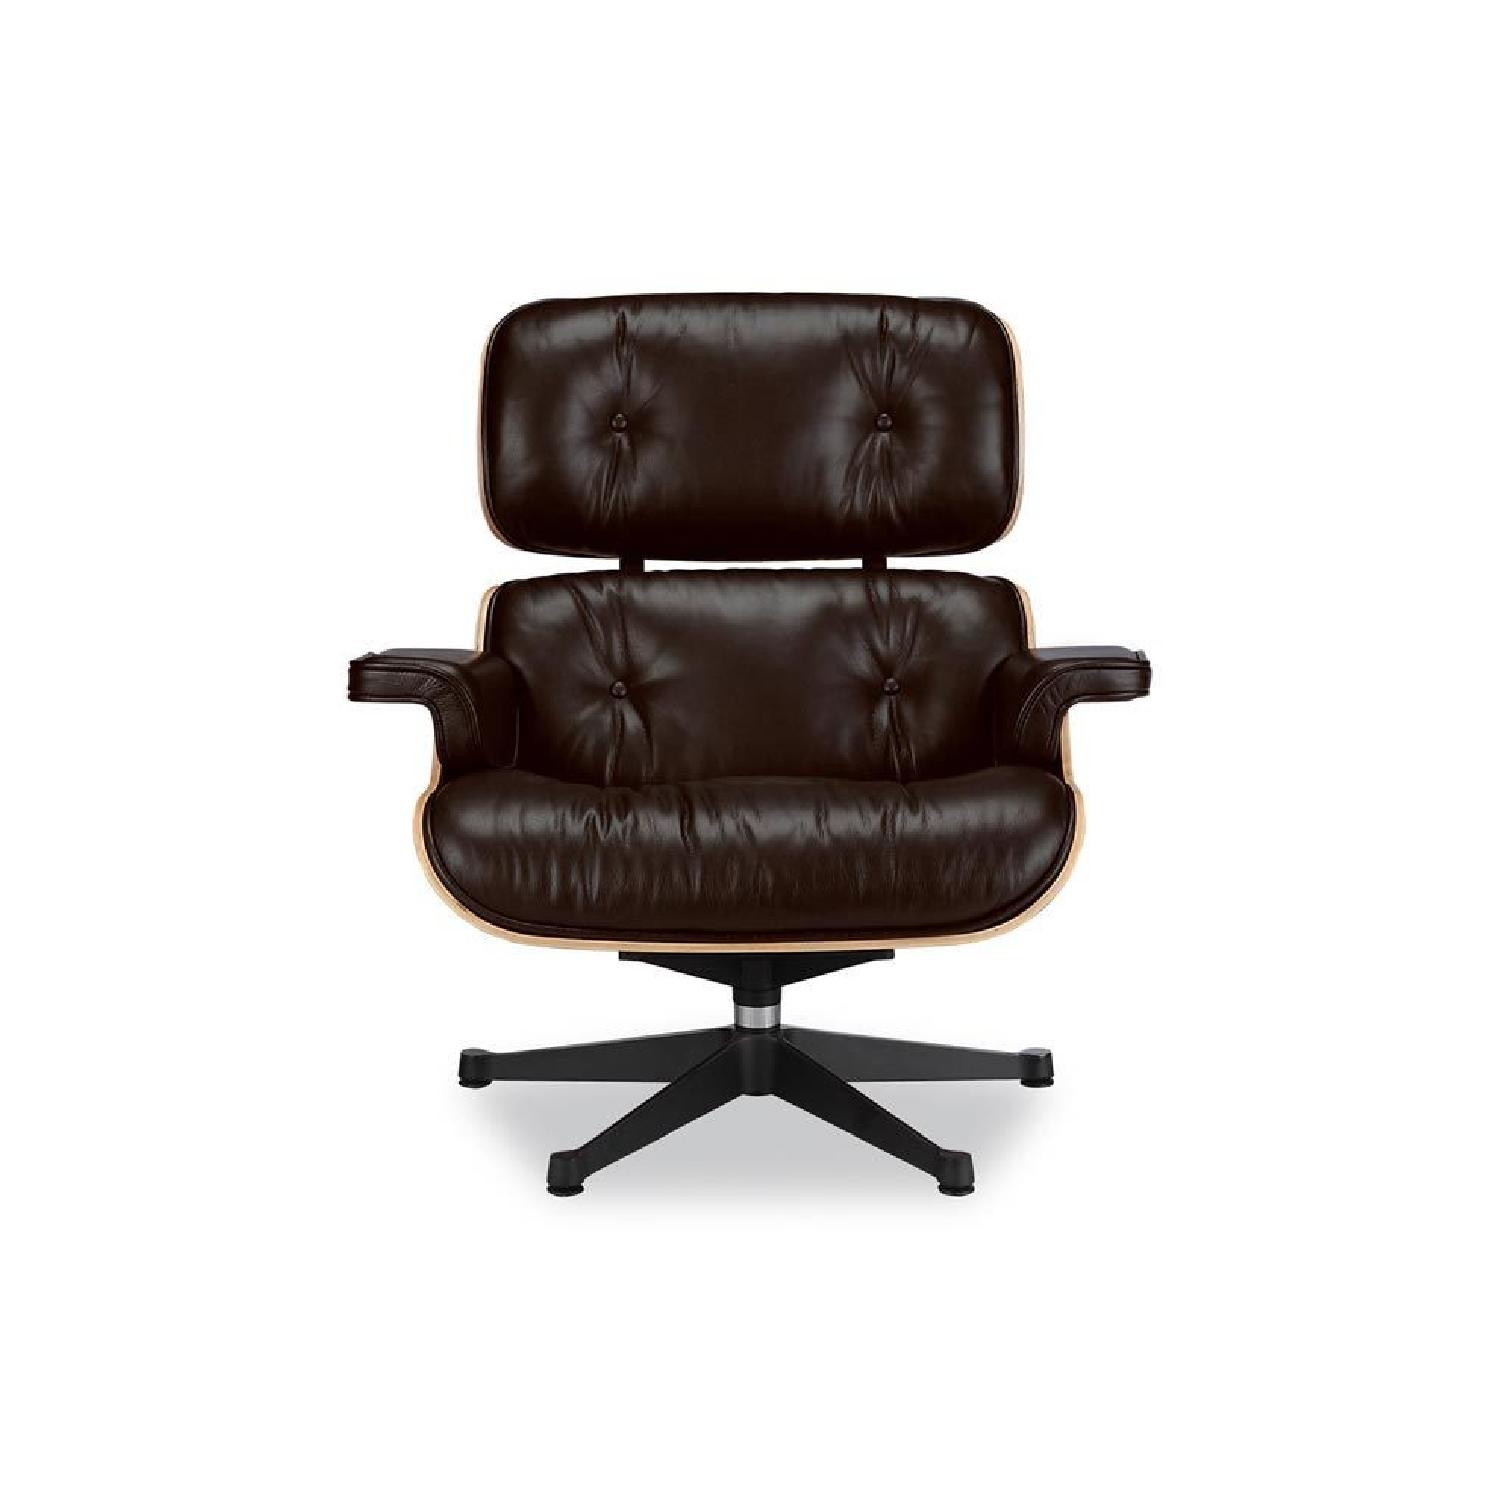 Wondrous Eames Lounge Chair Replica In Brown Aptdeco Pabps2019 Chair Design Images Pabps2019Com